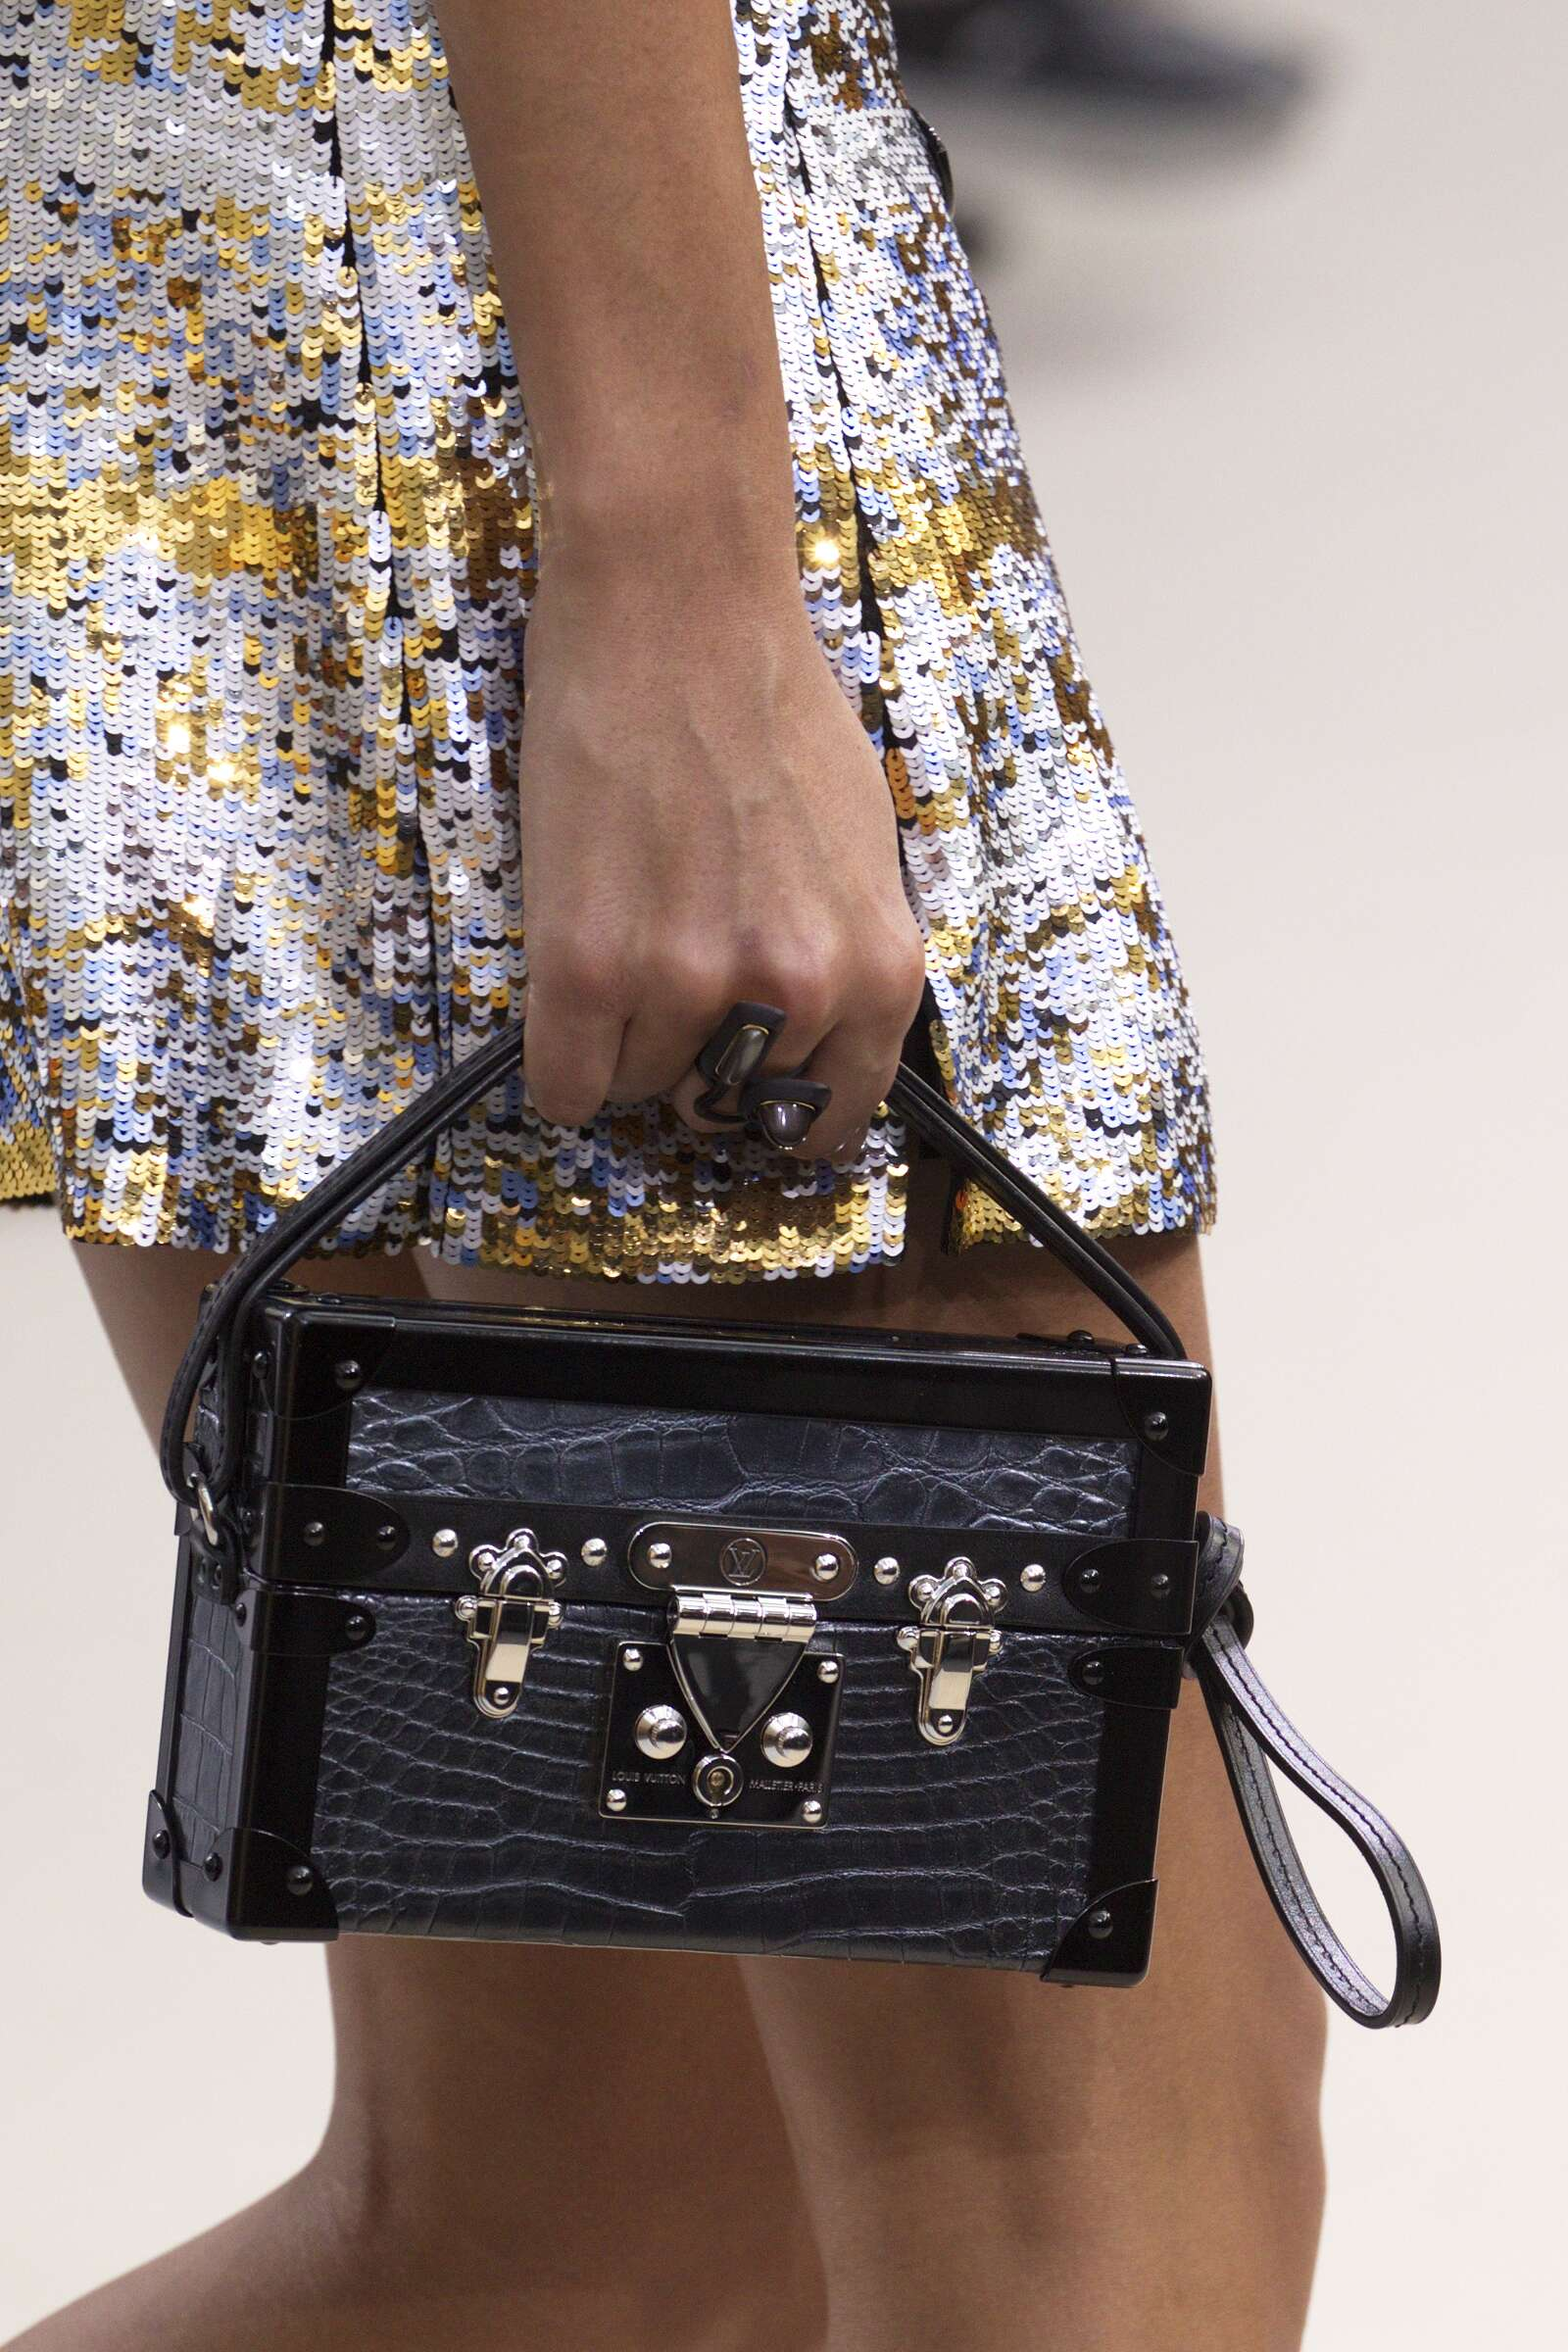 Louis Vuitton Bag Details Fashion Show